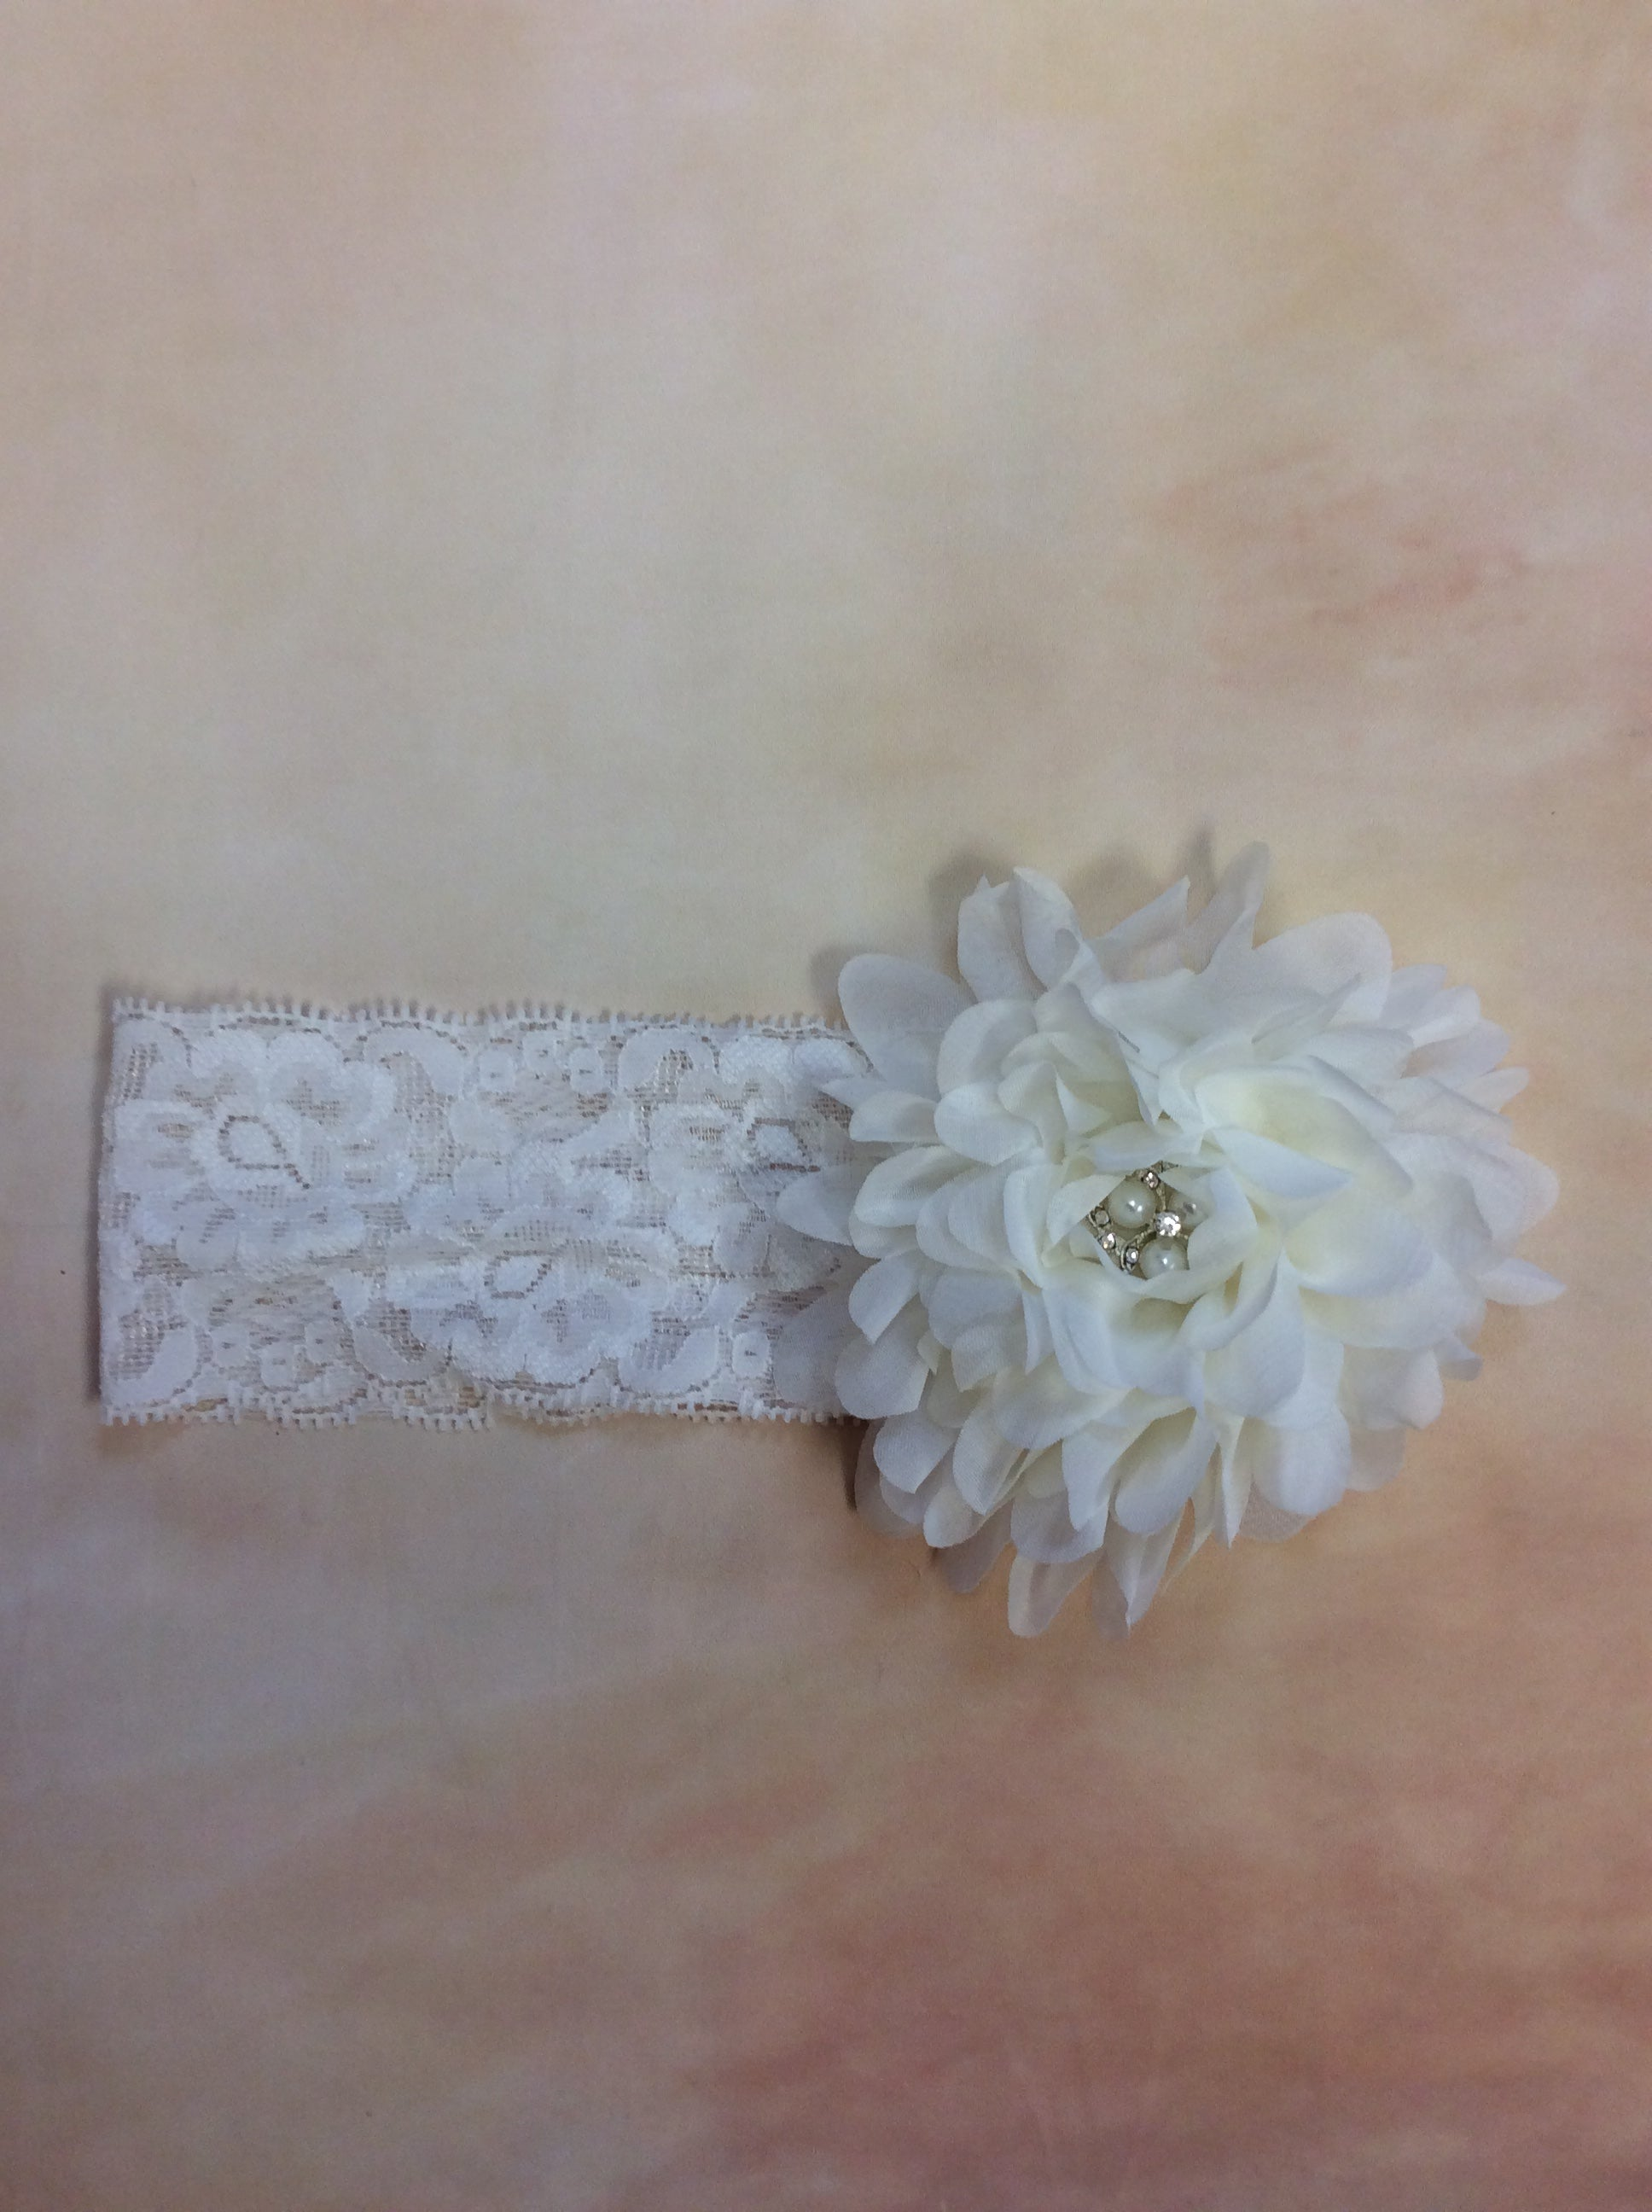 BWIL6 Diamond White Lace headband with Pearl & Rhinestone Center Stone